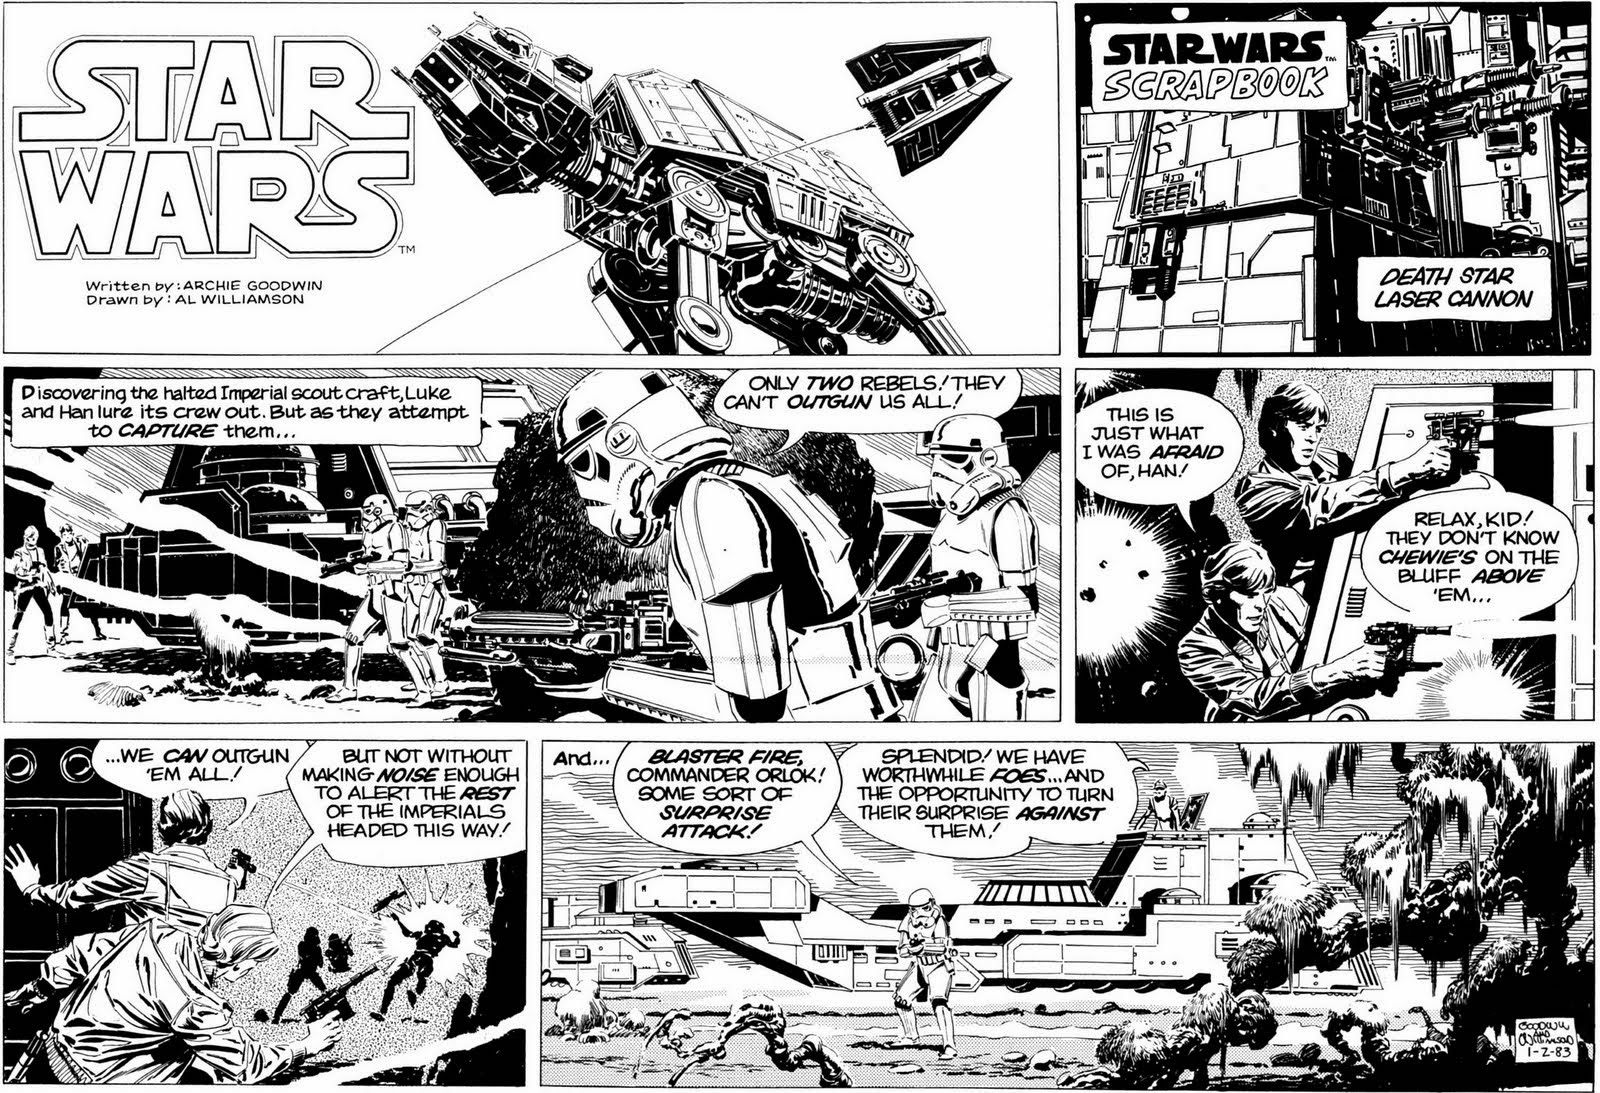 Laser canon! The \'Star Wars\' newpaper comics » We Are Cult